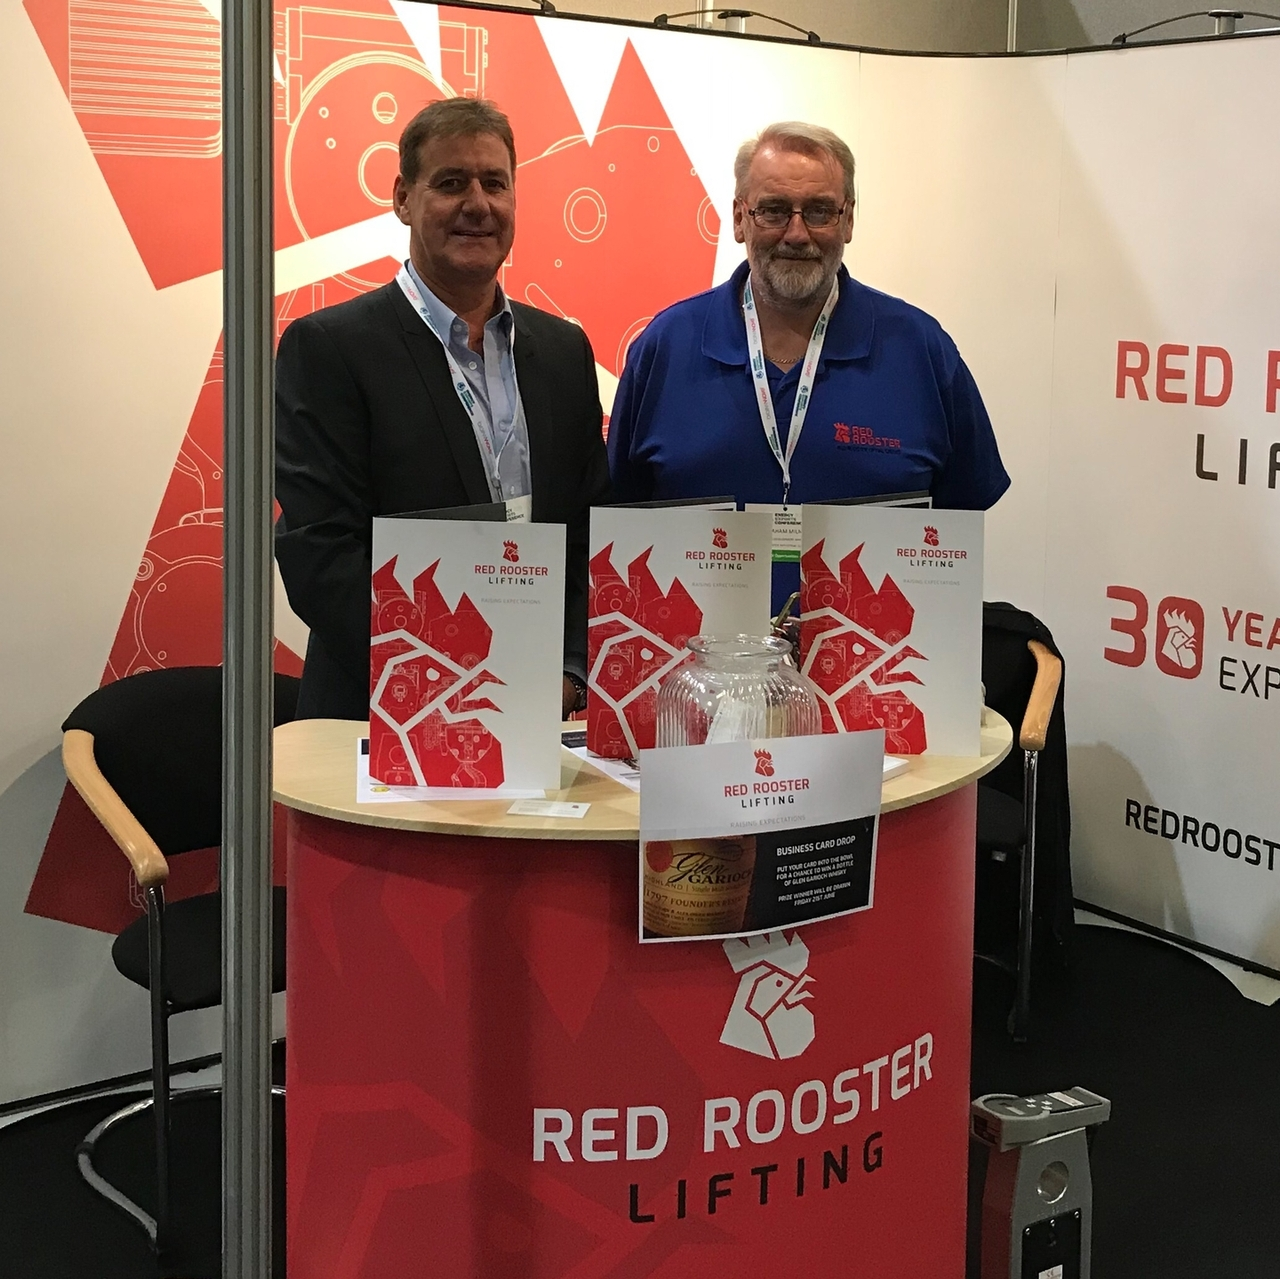 Red Rooster Lifting at the Energy Exports Conference 2019